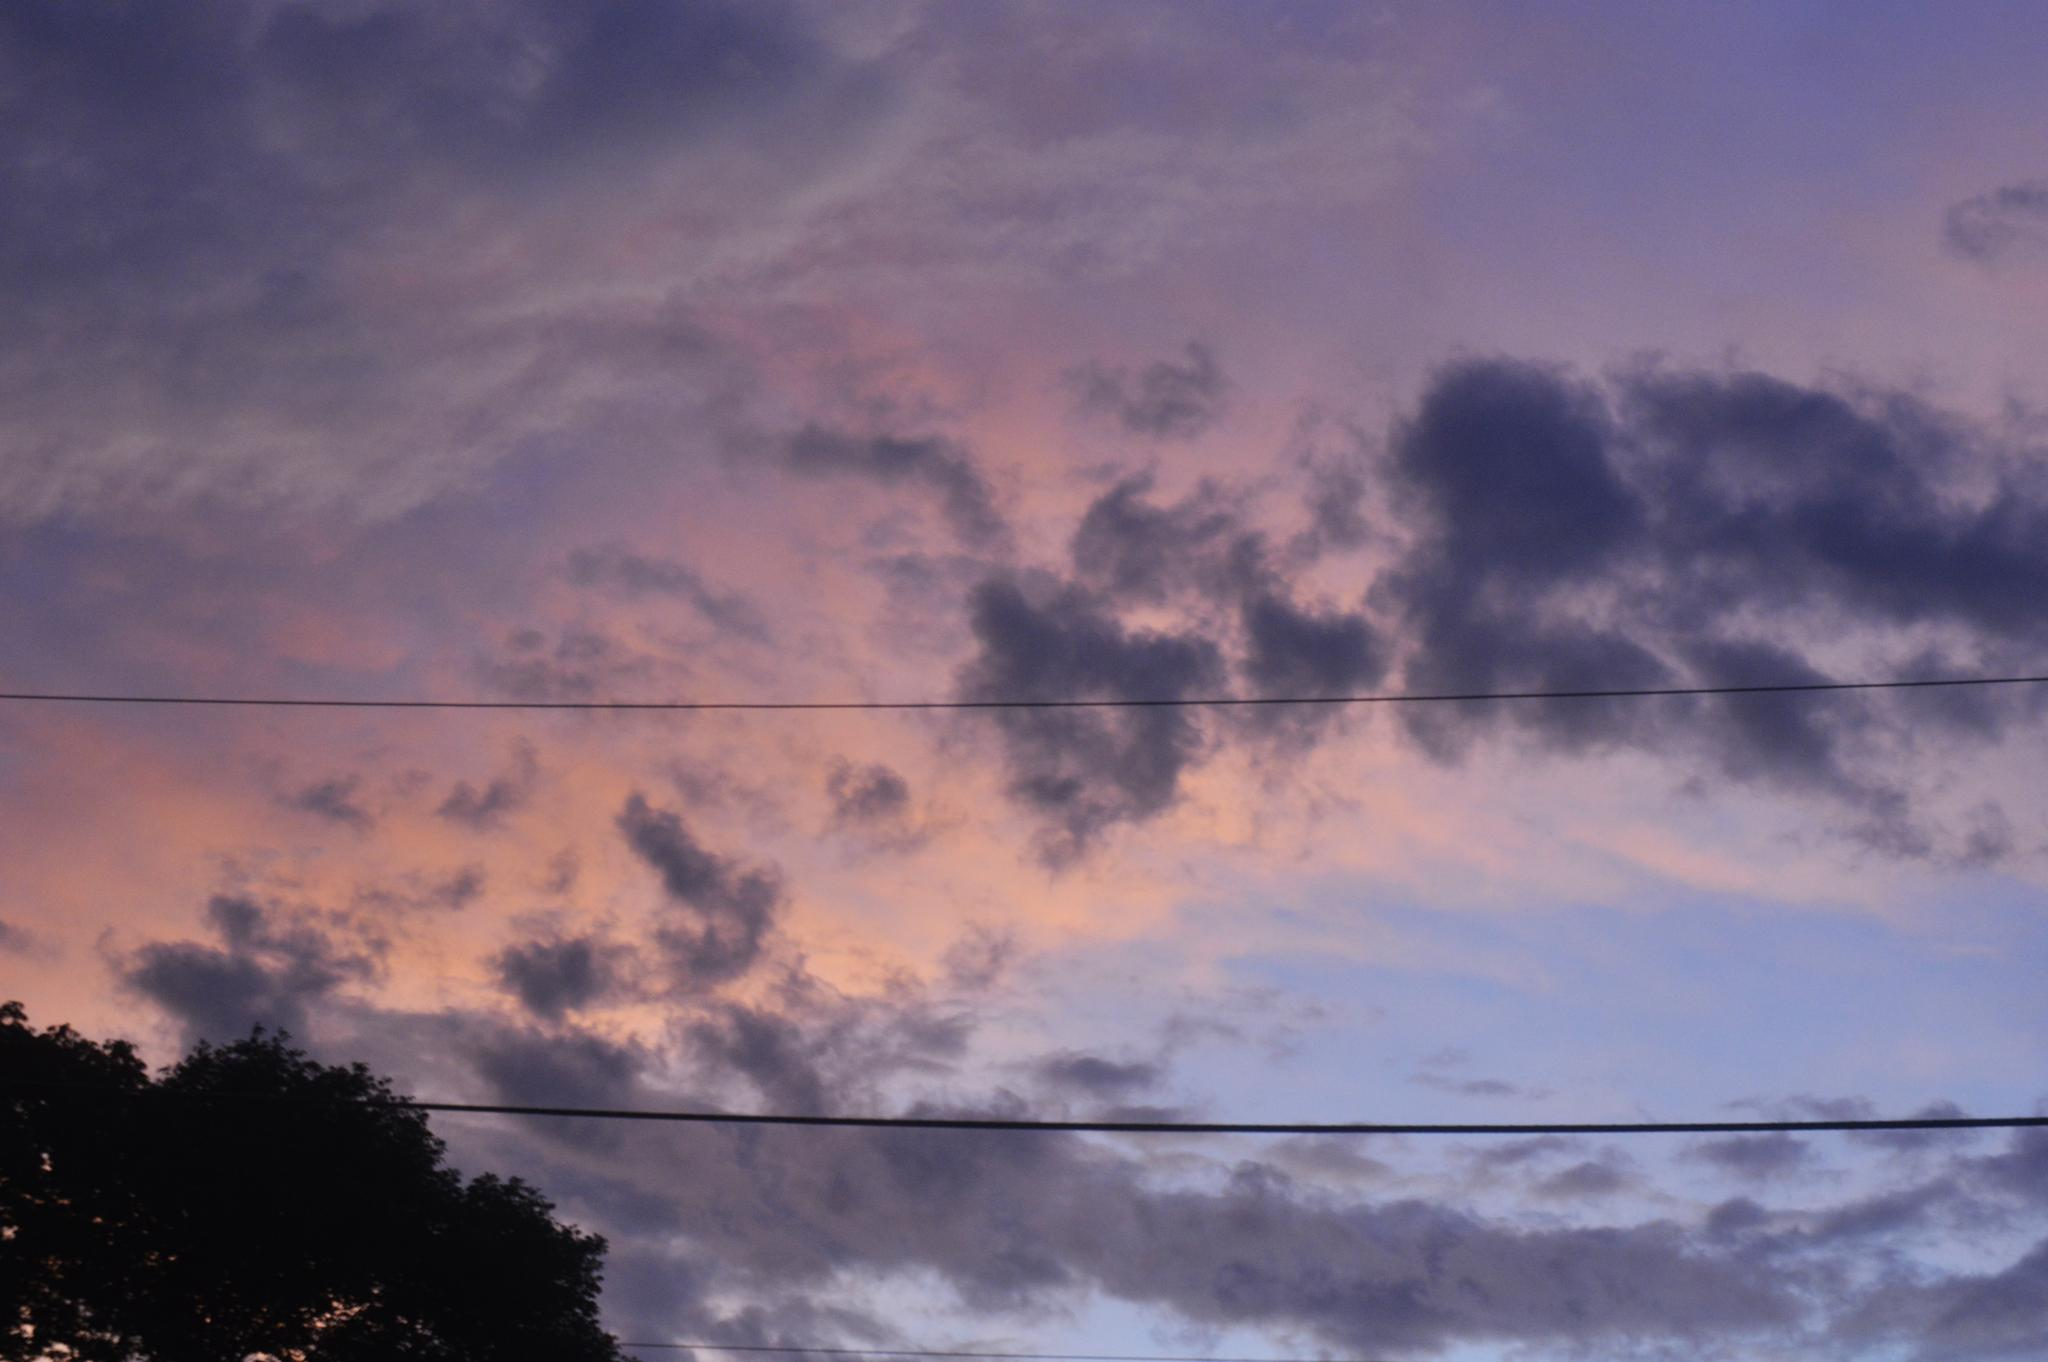 Sky at Sunset by michael.alexandersr